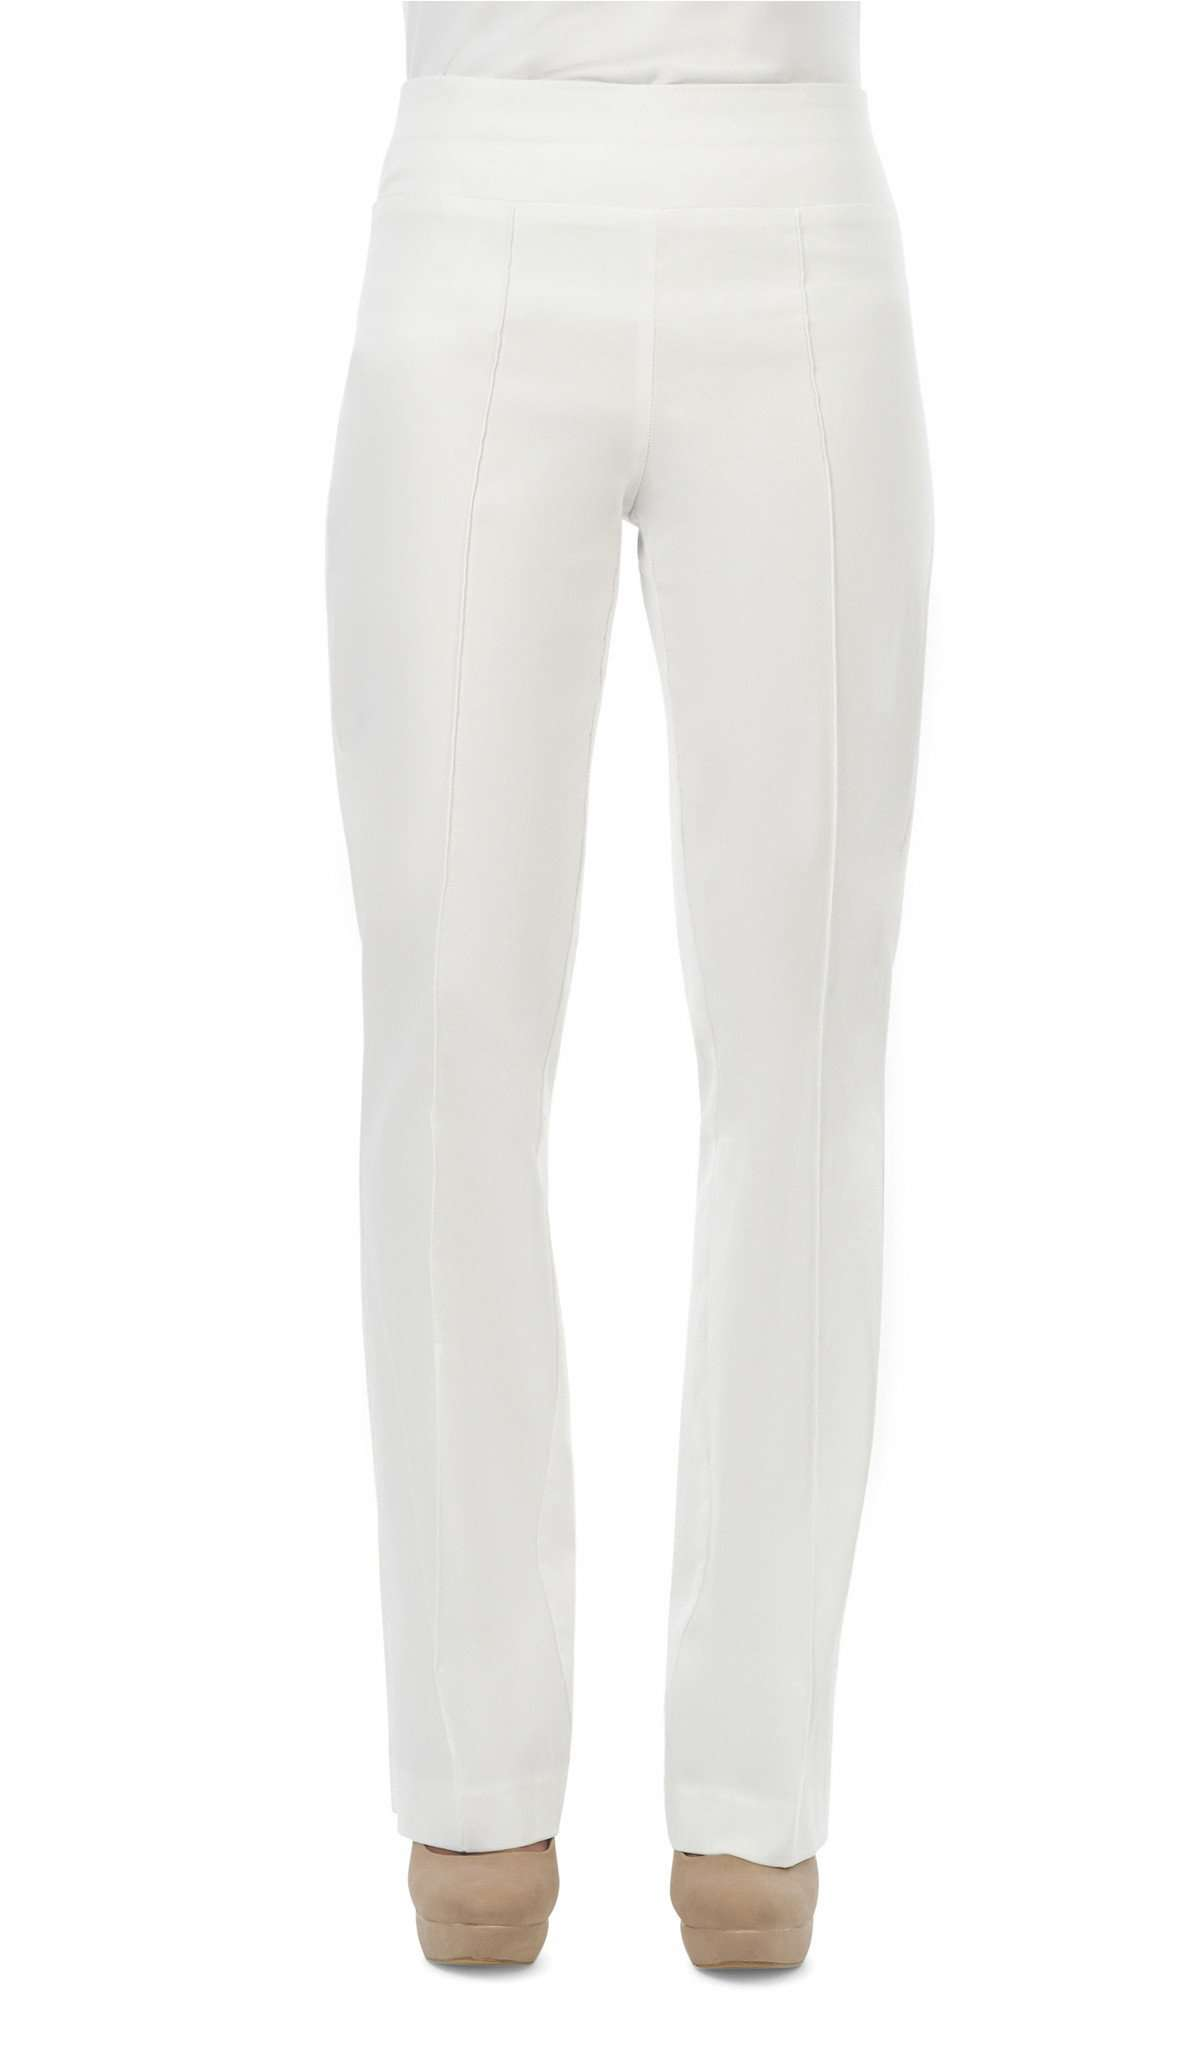 Women's White Miracle Fit Stretch Pants - Yvonne Marie - Yvonne Marie